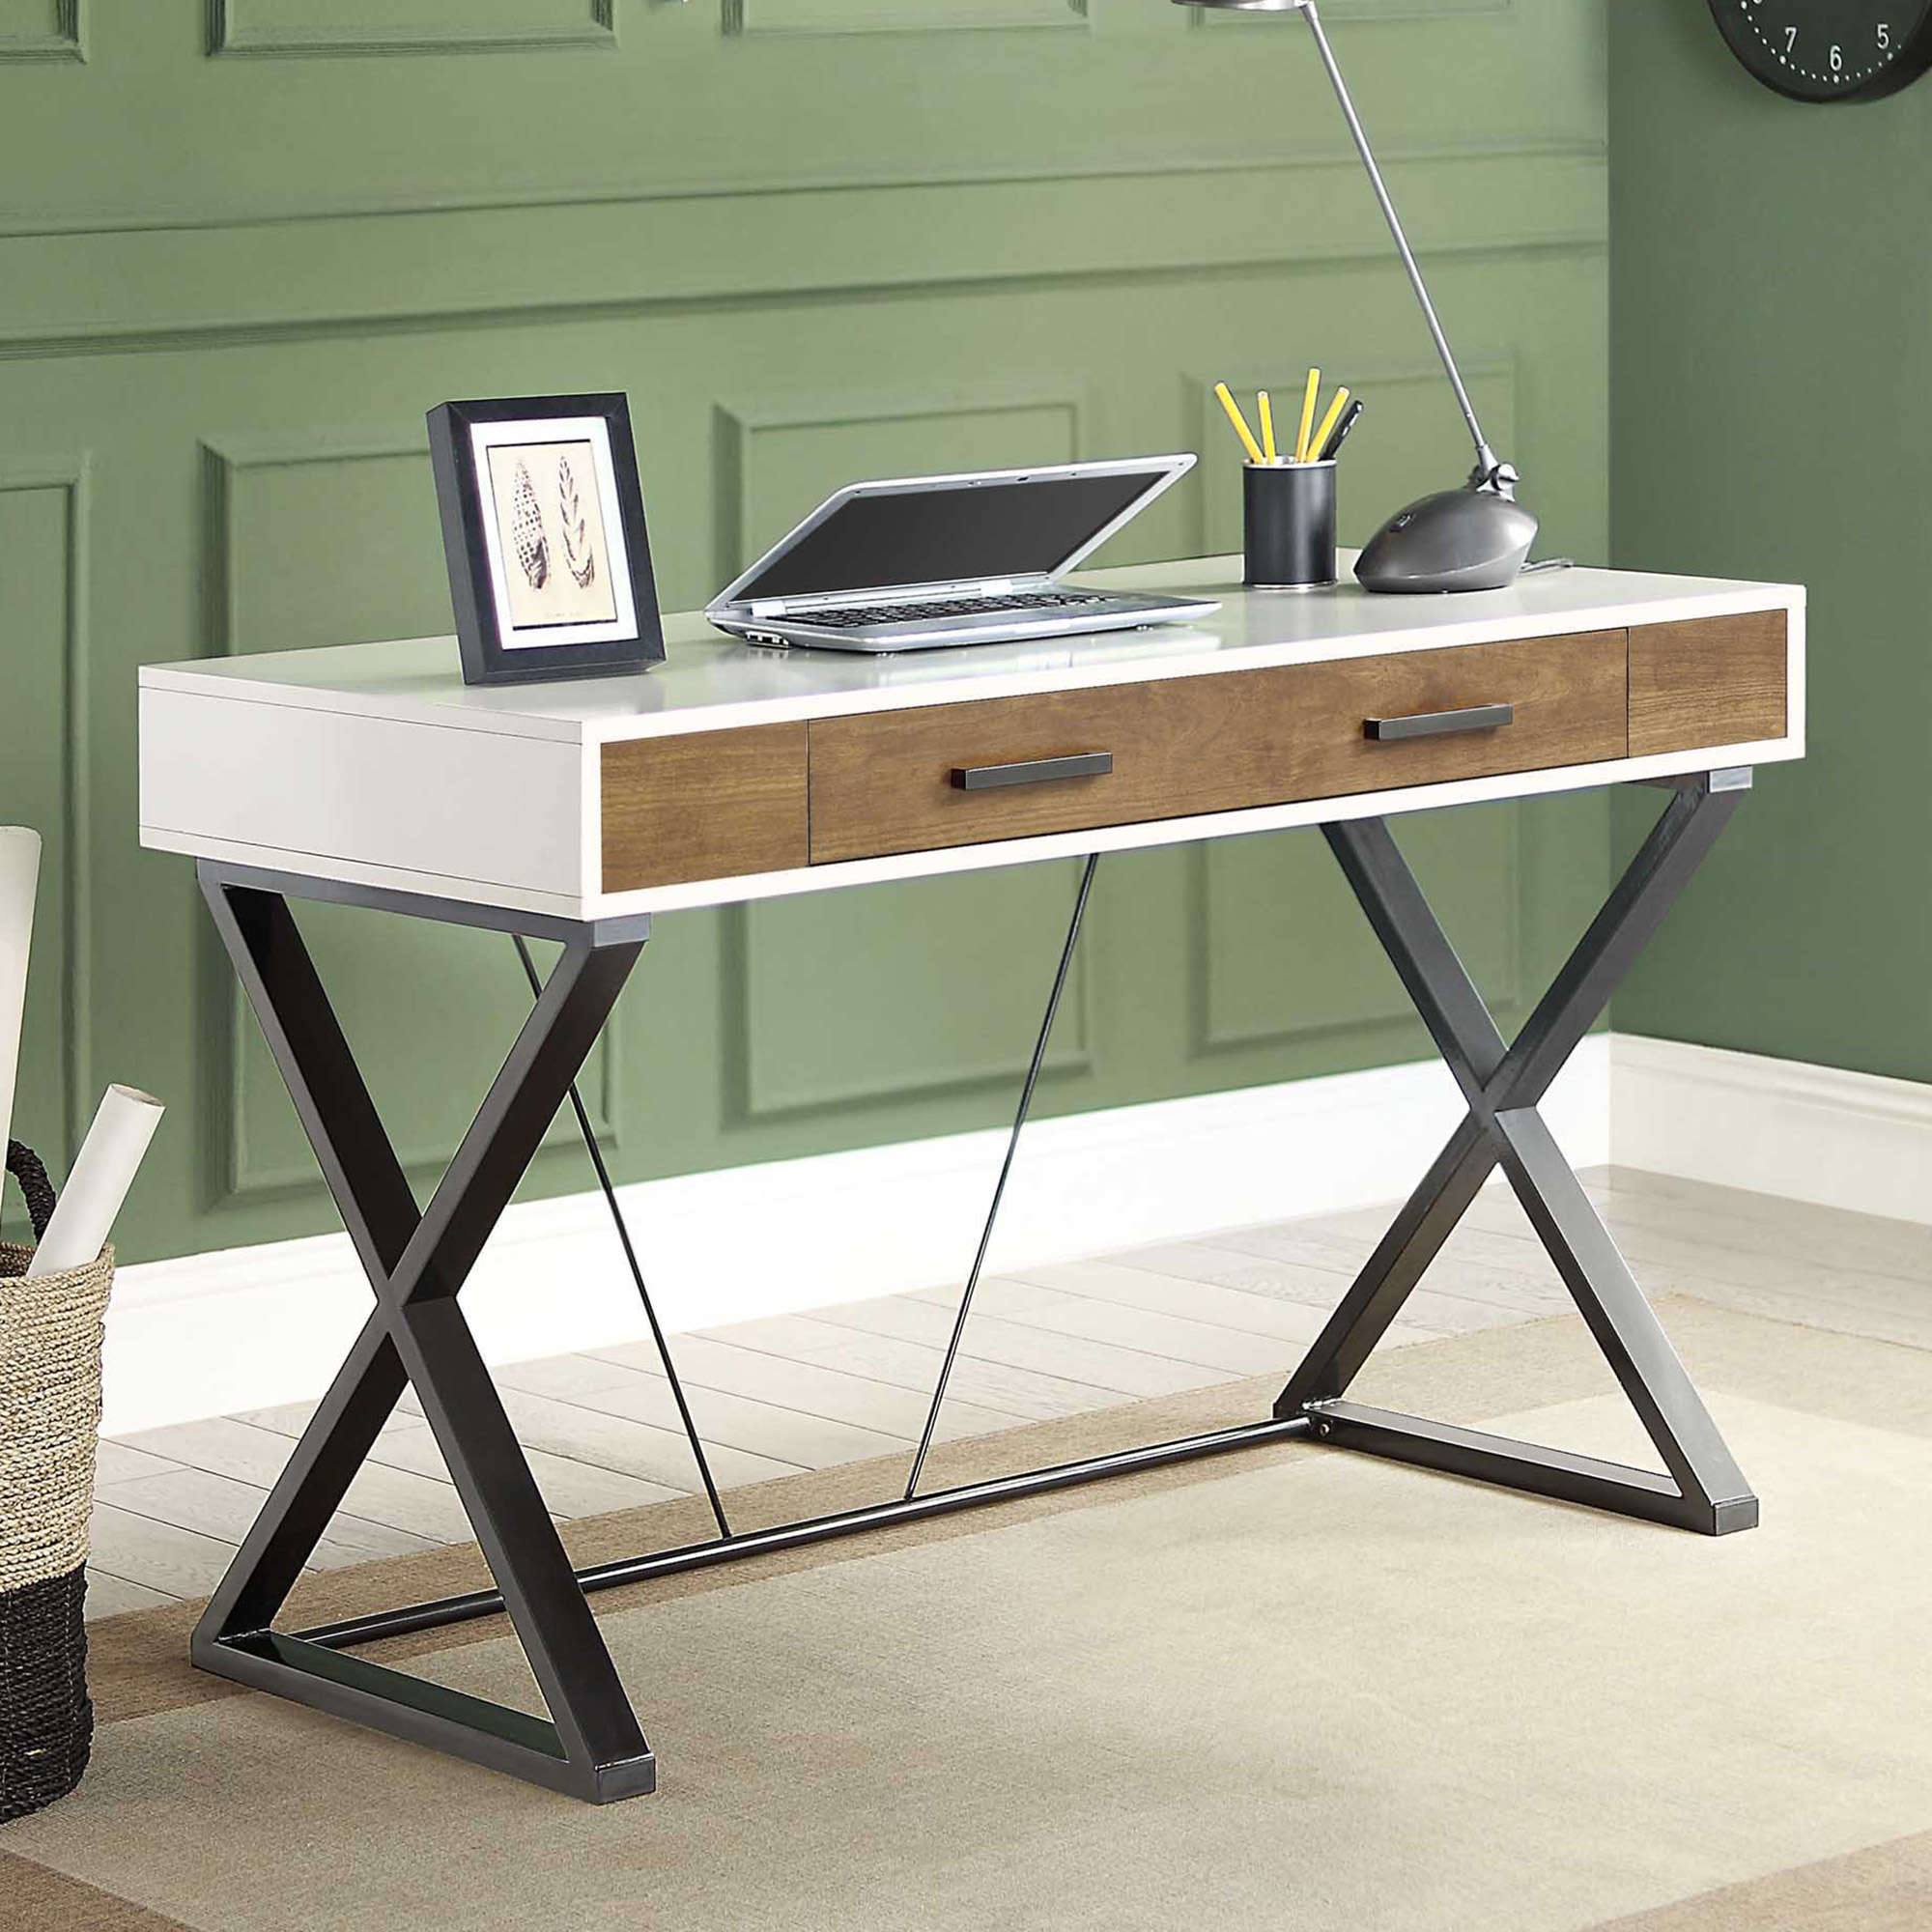 Whalen Samford Contemporary Computer Desk with pullout keyboard